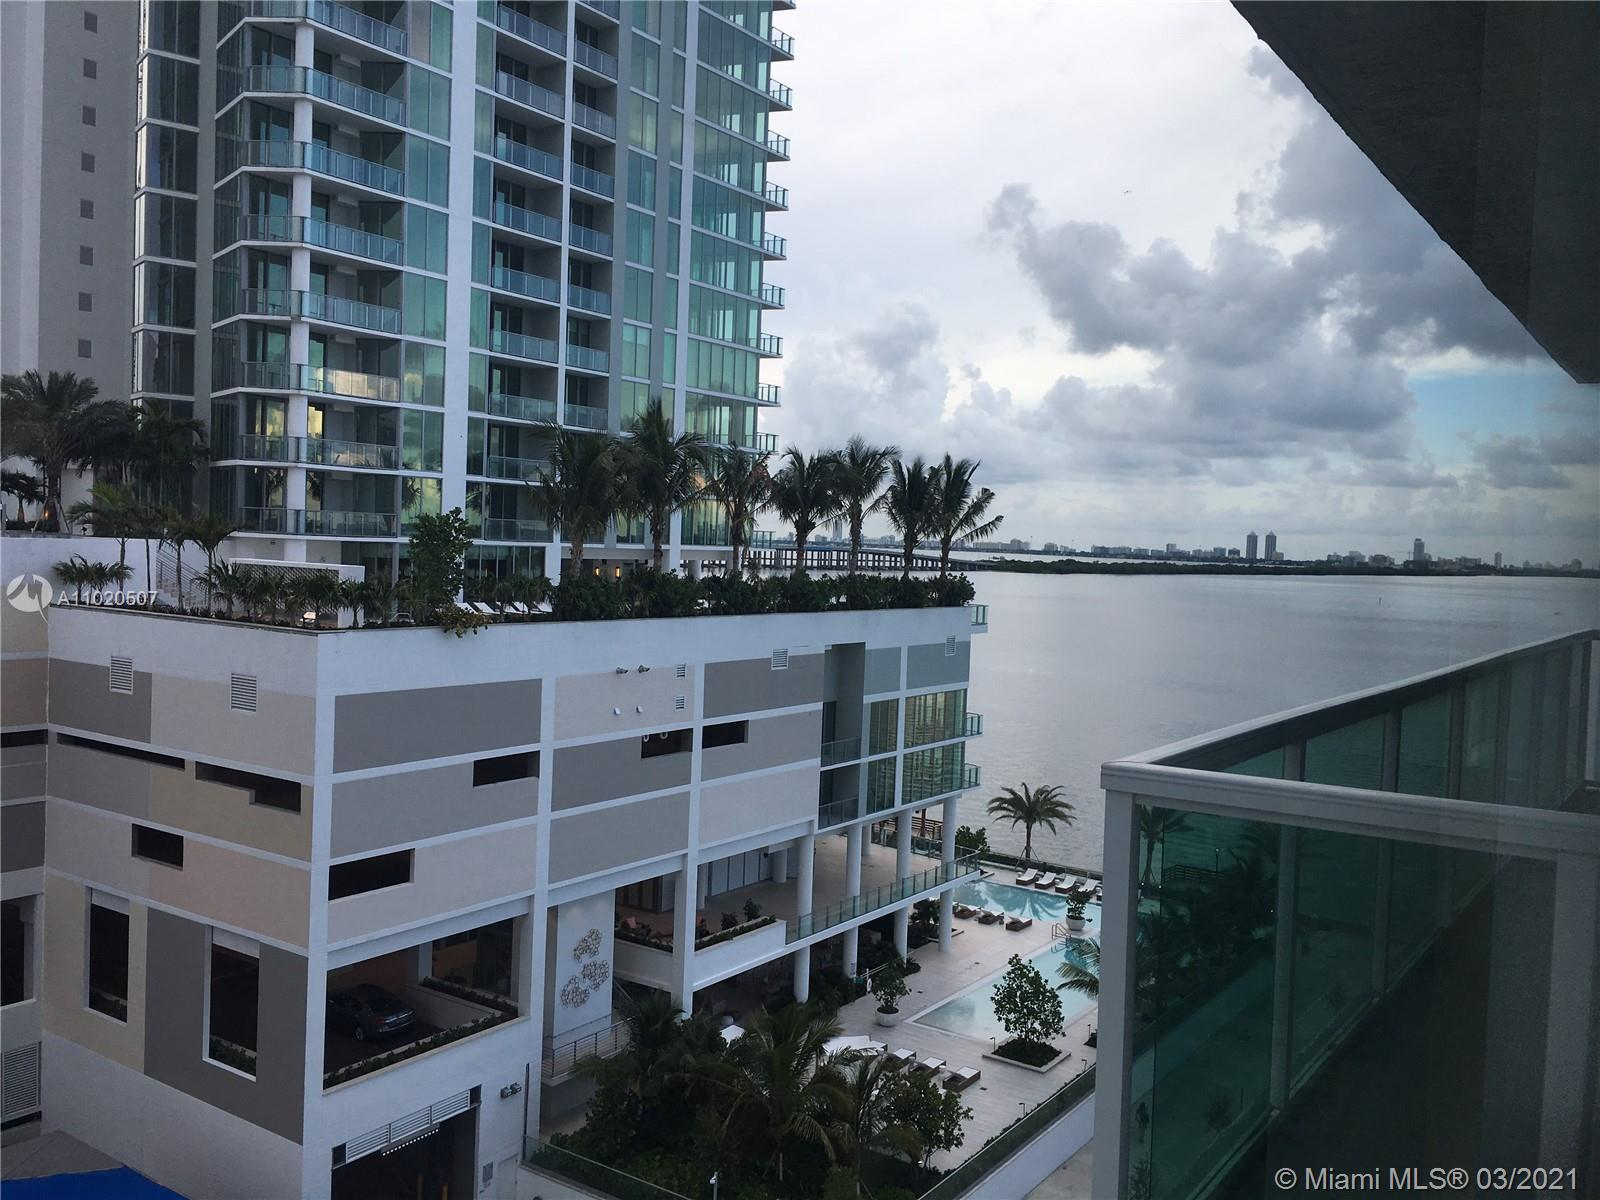 Beautiful condo unit with amazing water view! This bayfront building's amenities include a bayfront